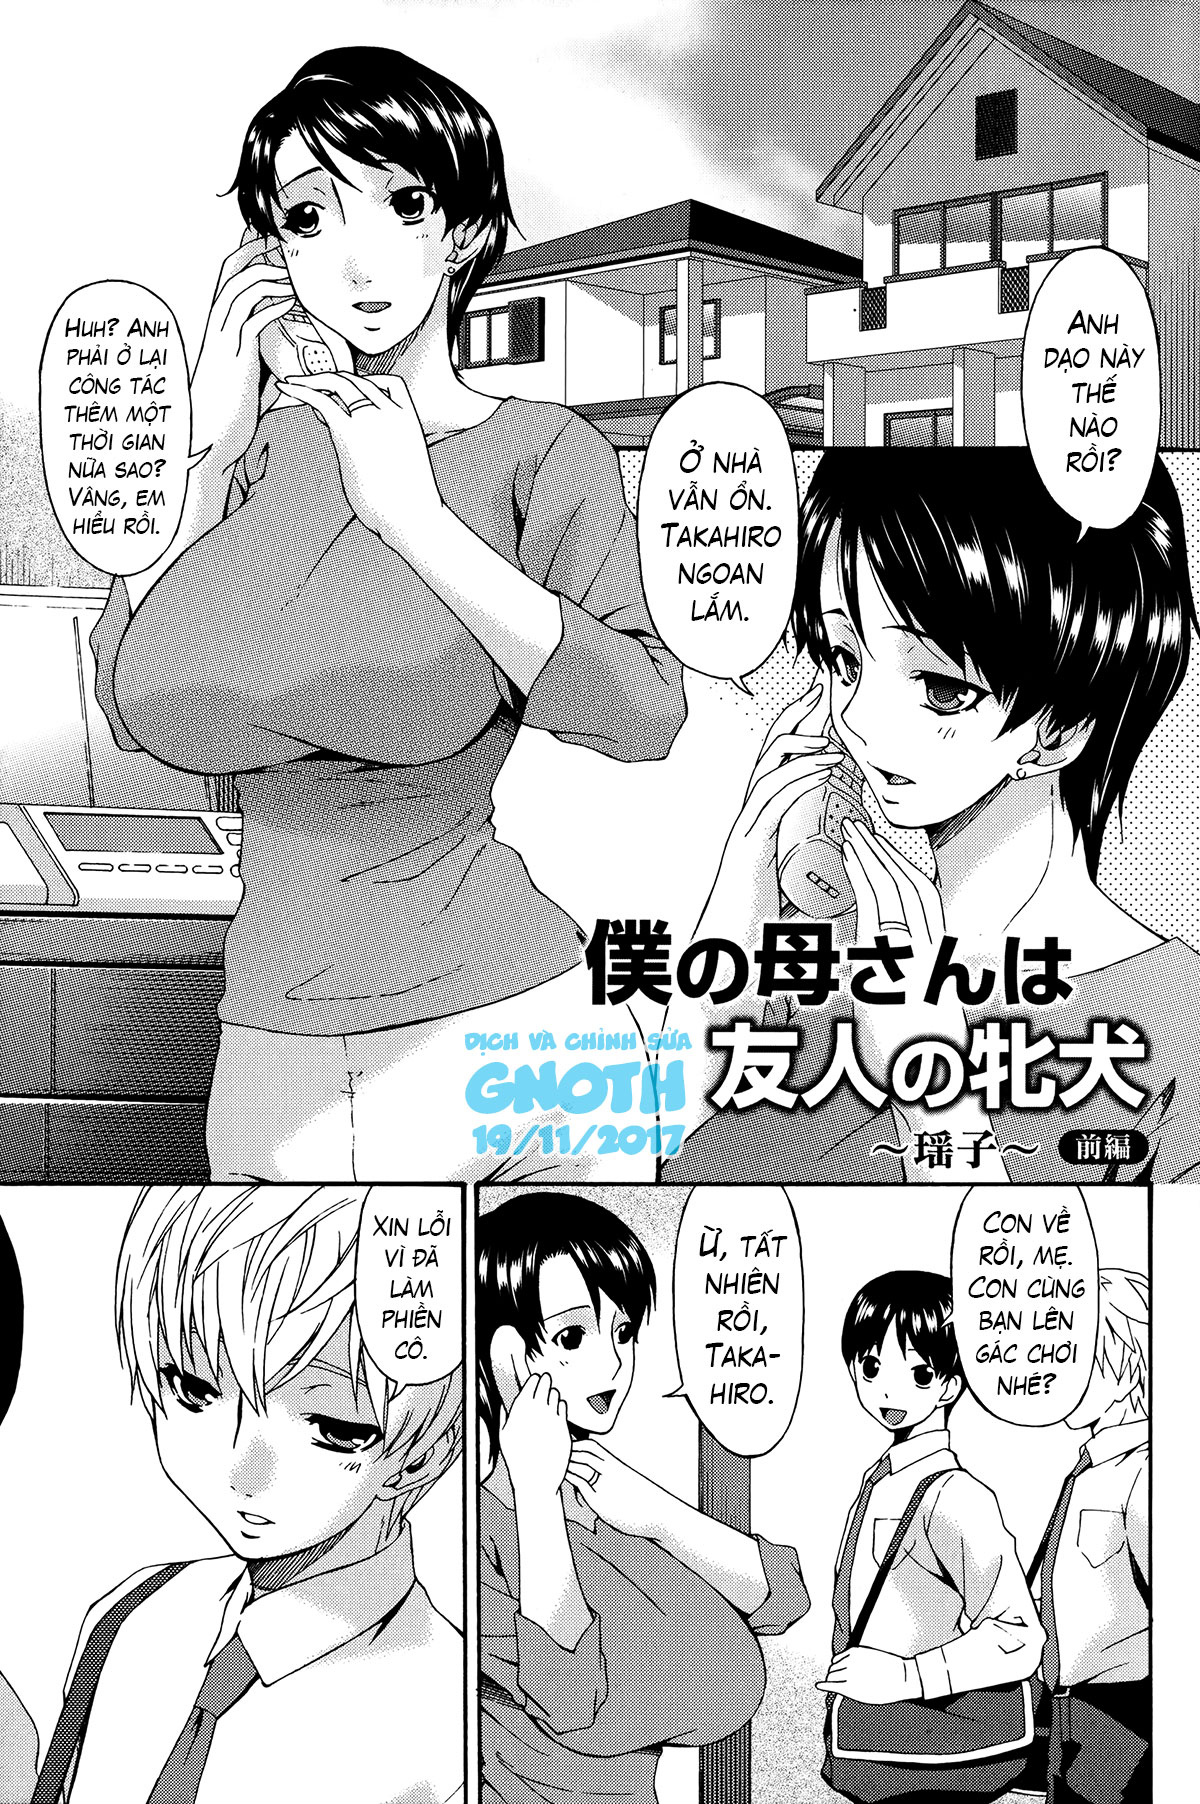 HentaiVN.net - Ảnh 6 - Boku no Kaa-san wa Yuujin no Mesuinu - My Mother is My Friends Slave - Chap 1